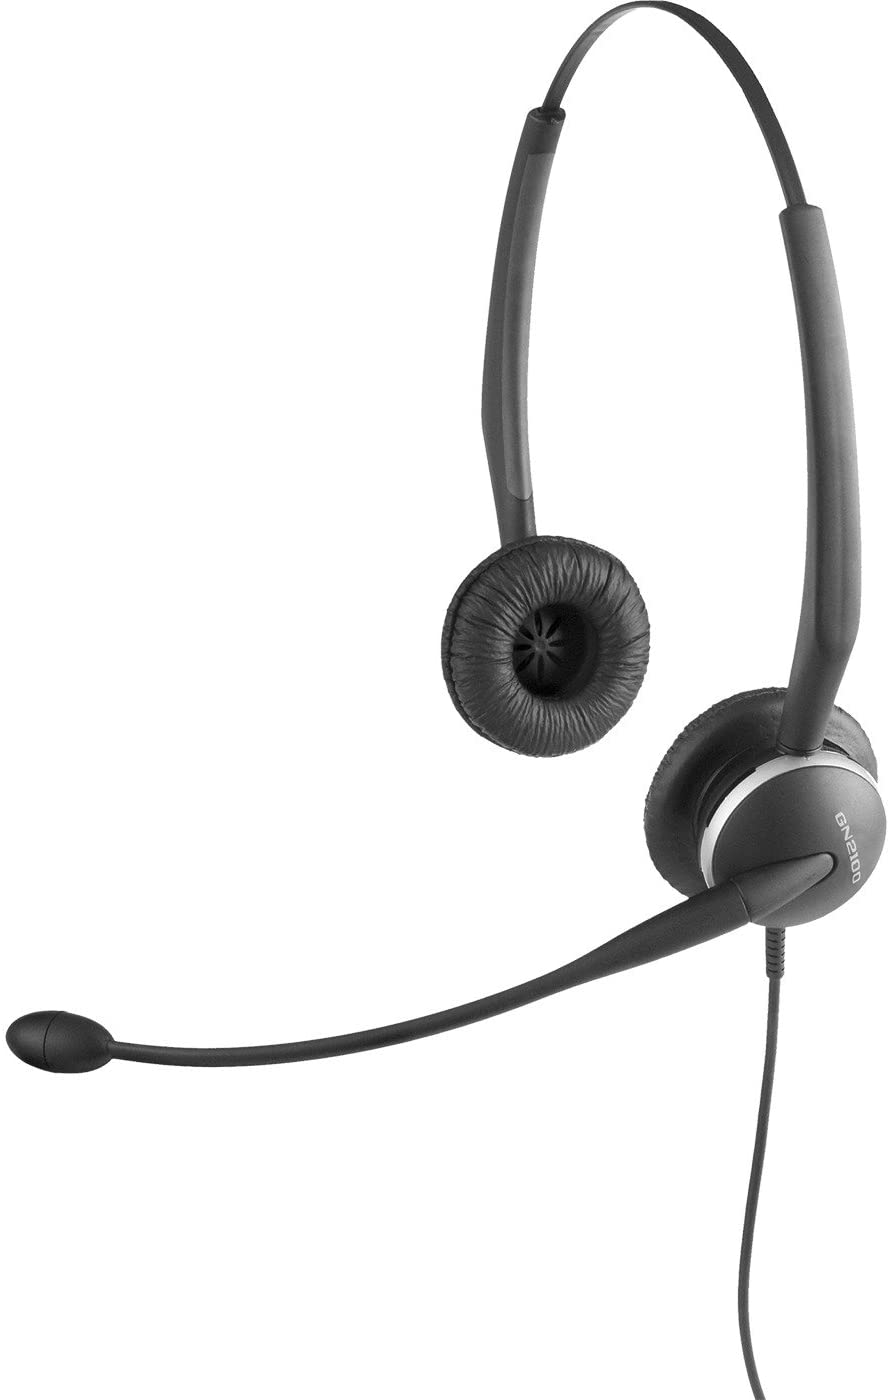 Jabra GN2125 NCTC Telecoil Headset for Deskphone for Special Hearing Needs